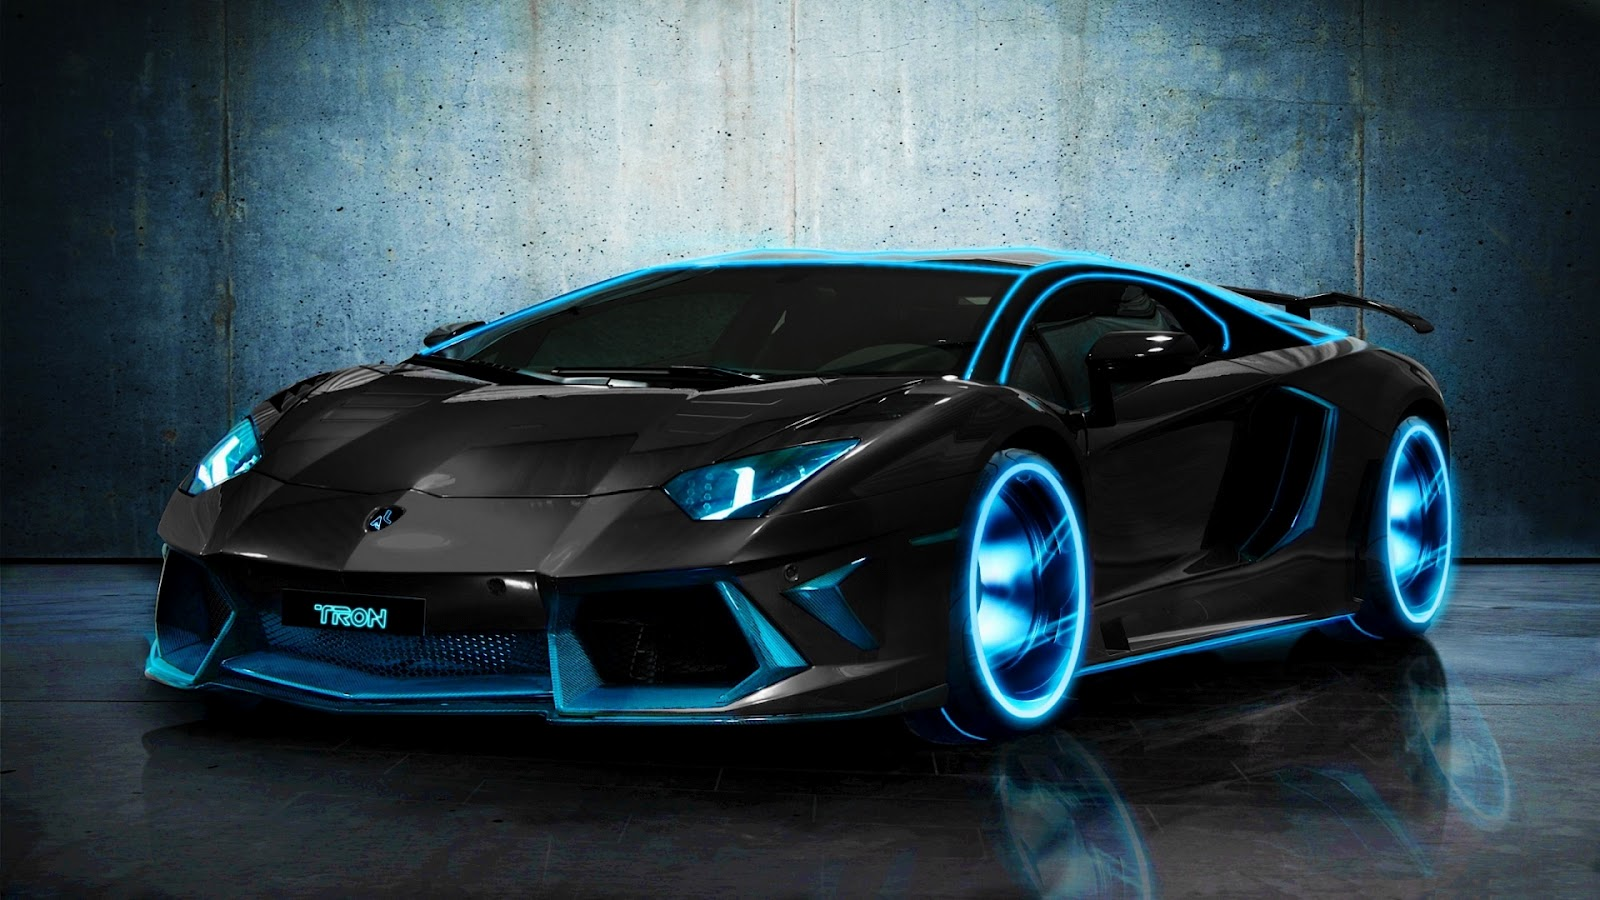 HD Wallpapers of Cars Free Download - Mobile wallpapers